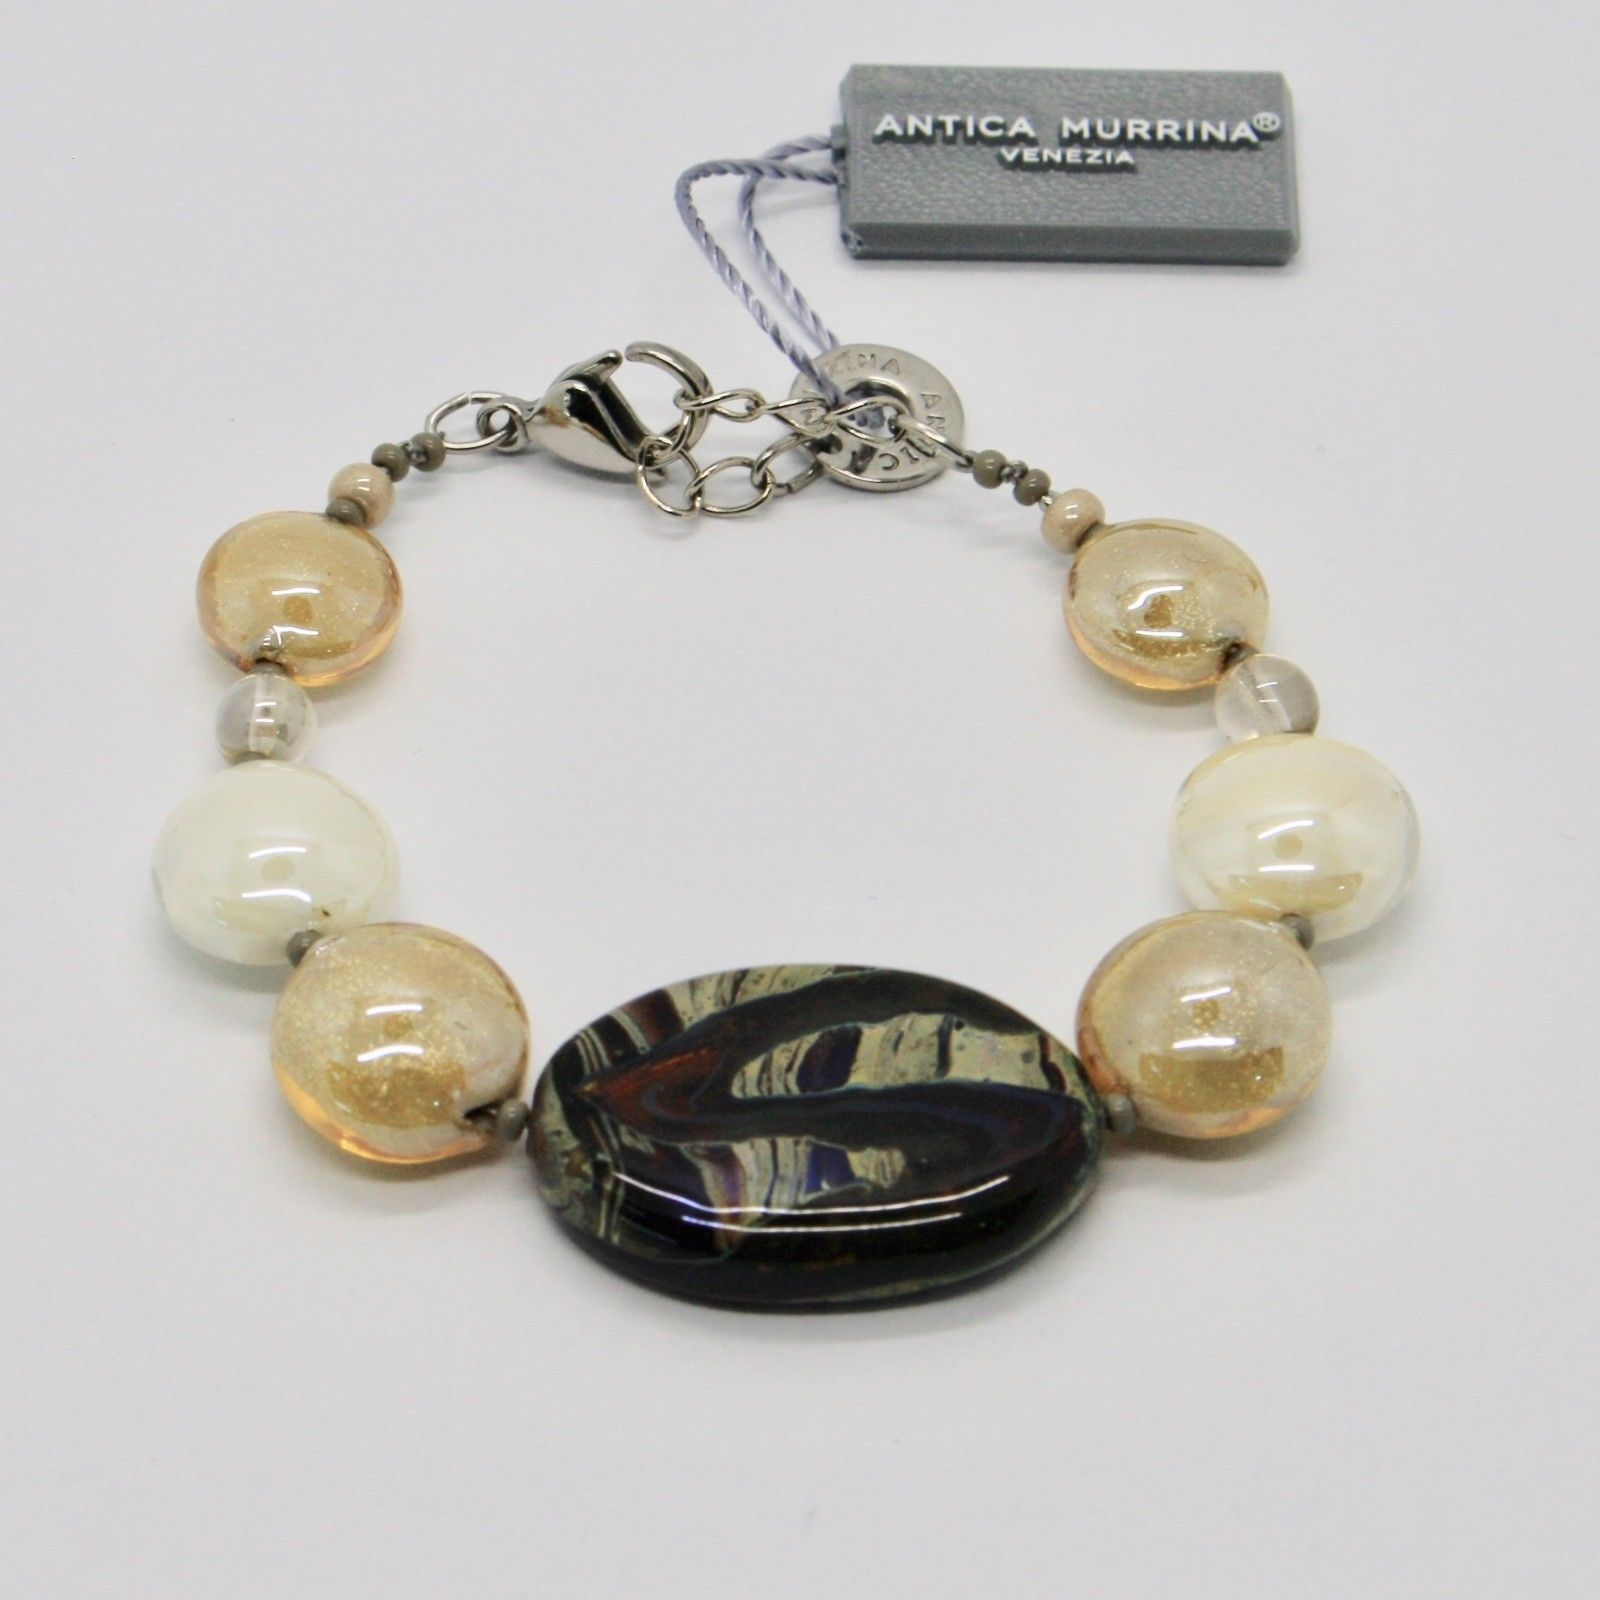 BRACELET ANTICA MURRINA VENEZIA WITH MURANO GLASS BROWN CREAM BR794A10